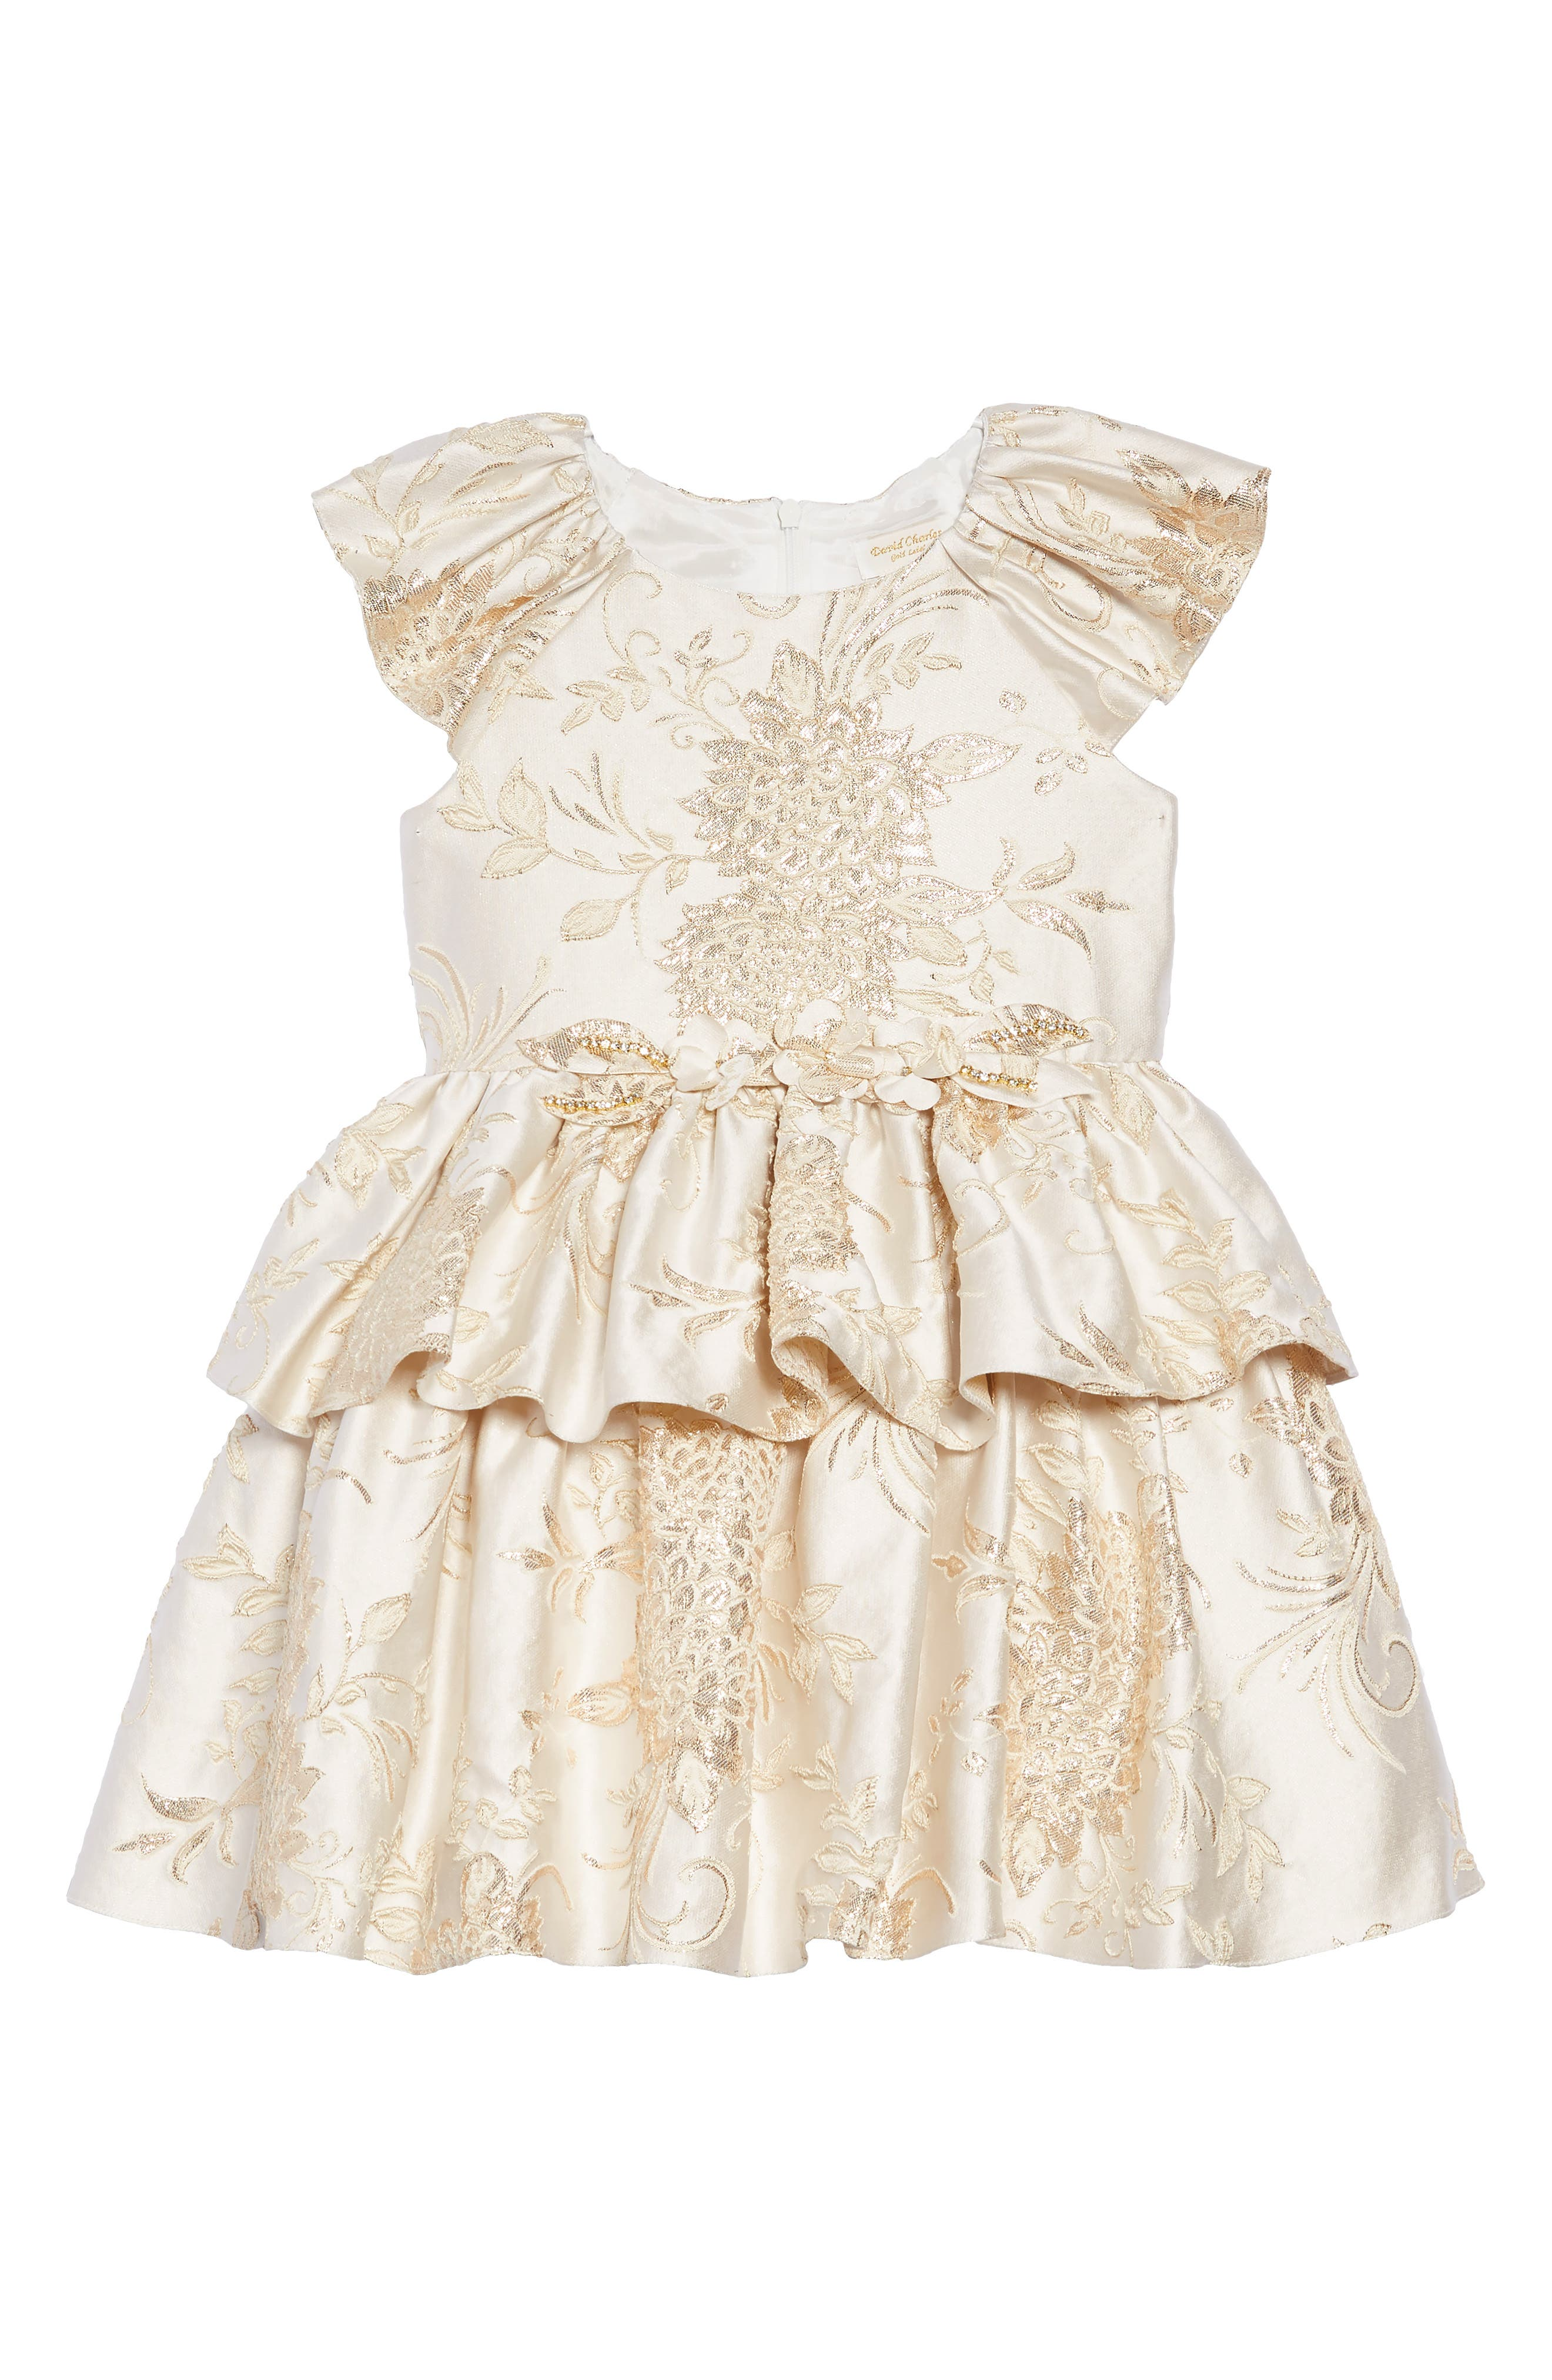 Brocade Dress,                         Main,                         color, IVORY/ GOLD